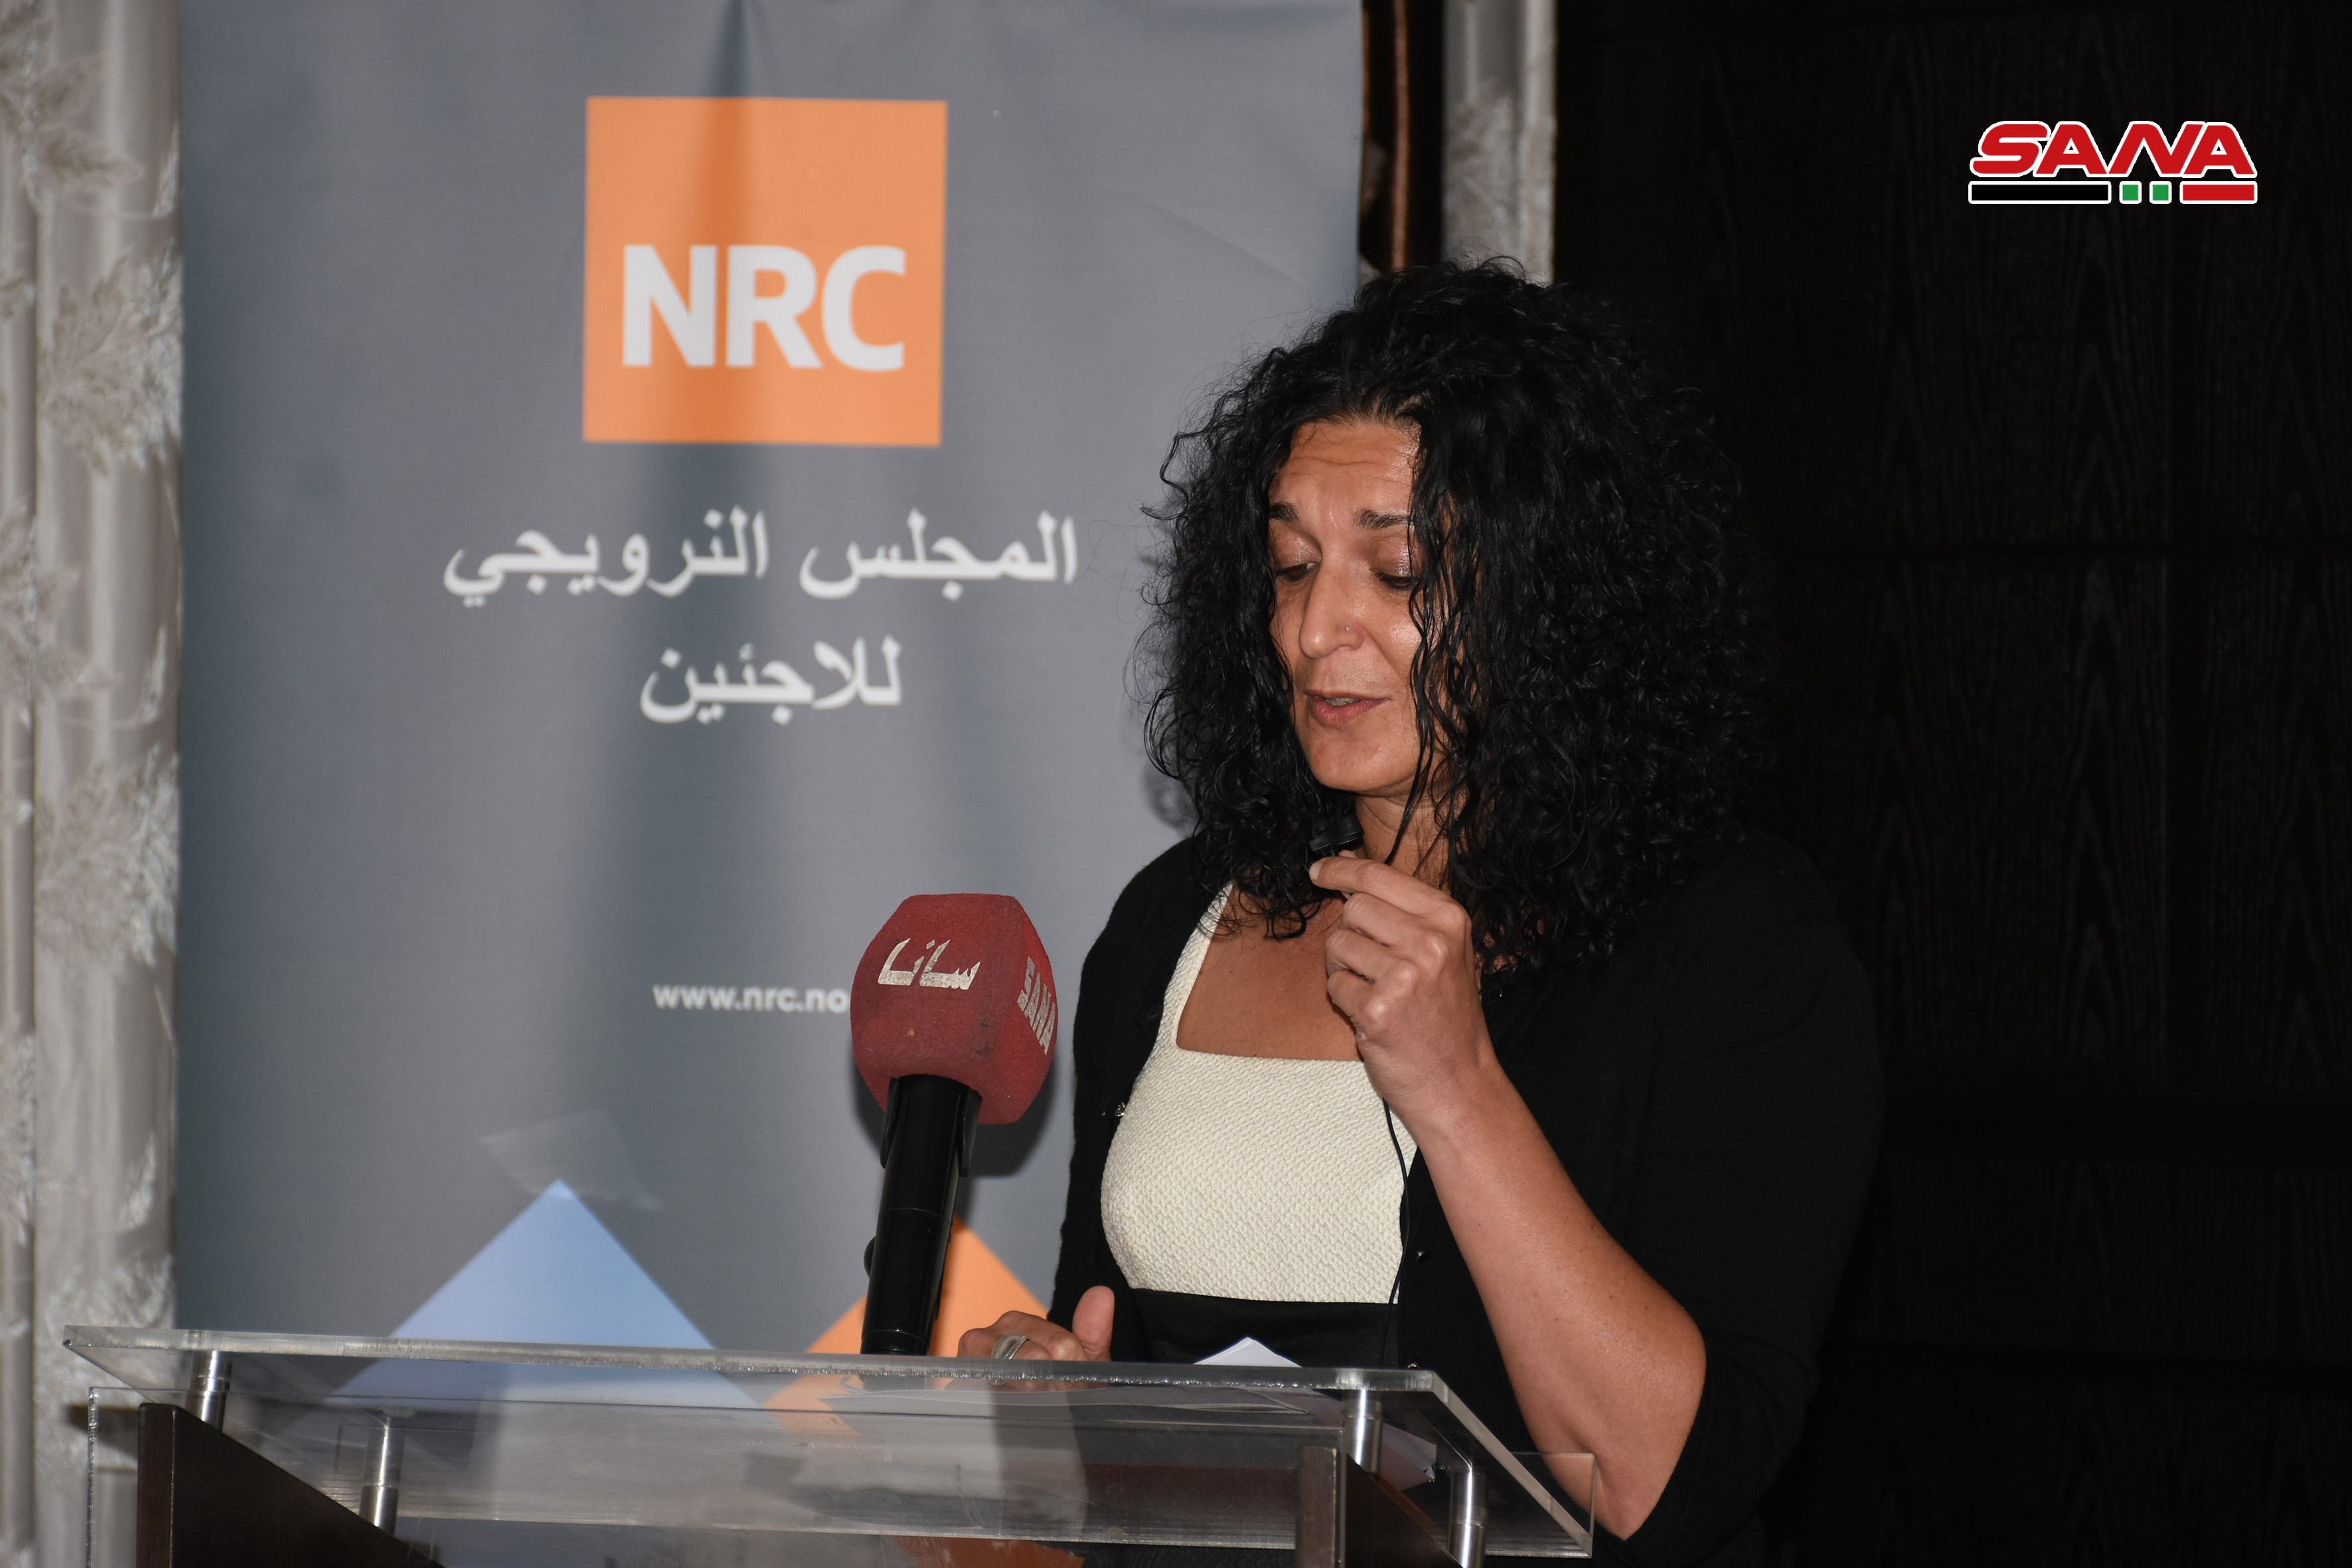 Norwegian Refugee Council holds regional meeting in Damascus